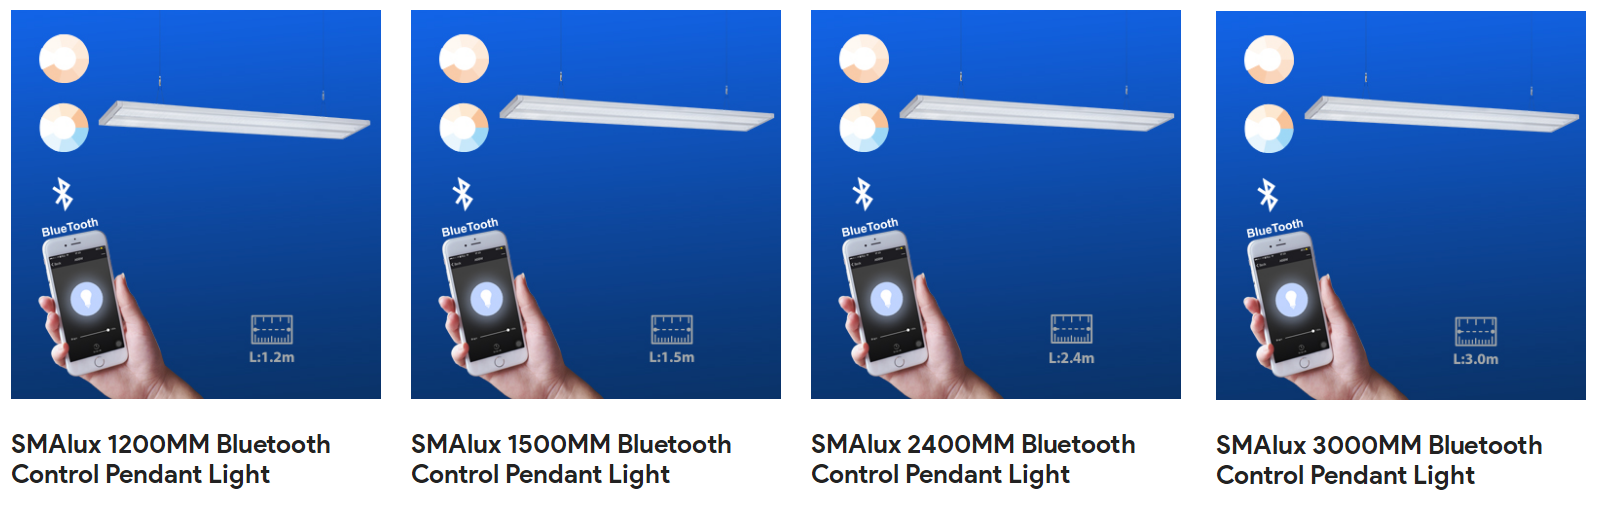 Types of Bluetooth Pendant Light.